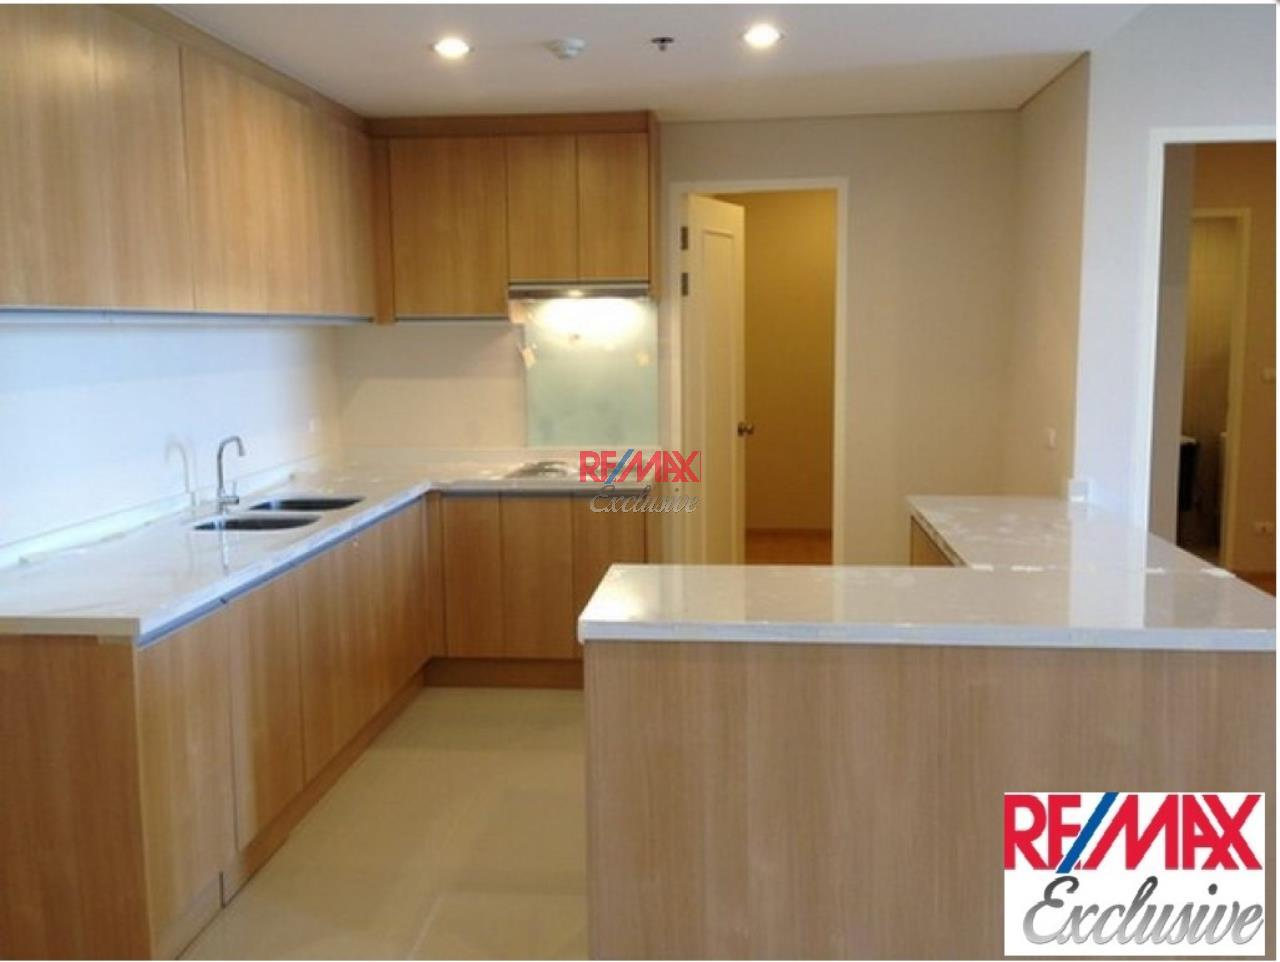 RE/MAX Exclusive Agency's Villa Asoke Penthouse With Scenic View, 5 Bedrooms, 200 Sqm, For Sale 31,300,000 THB 1